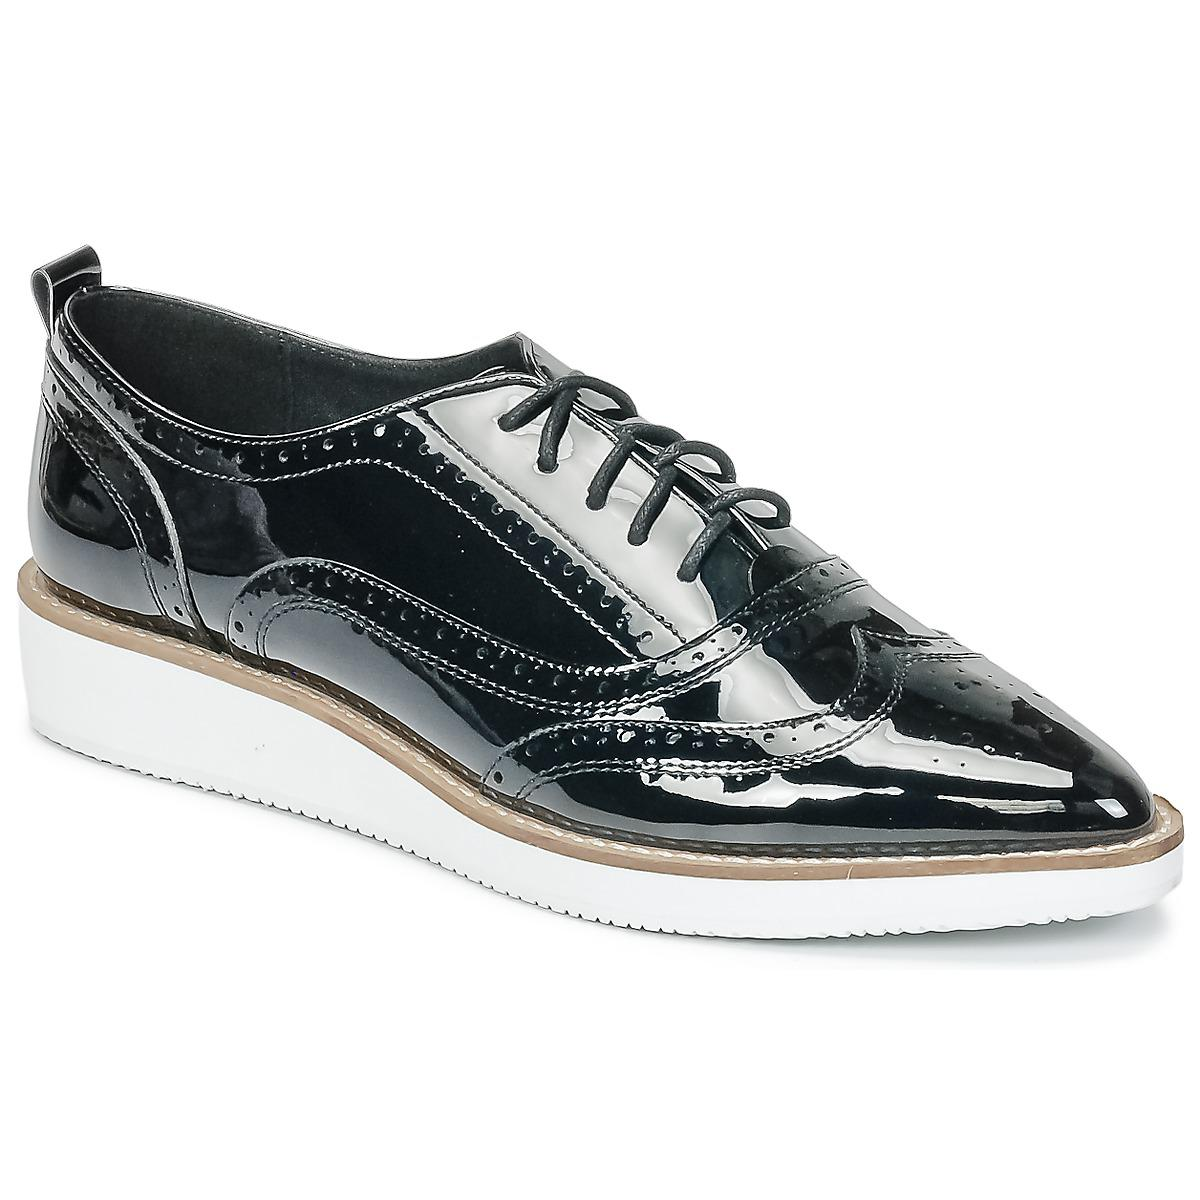 Cheap Sale From China Online Cheap Online Kurt Geiger KNOXY- women's Smart / Formal Shoes in g2aR75OD